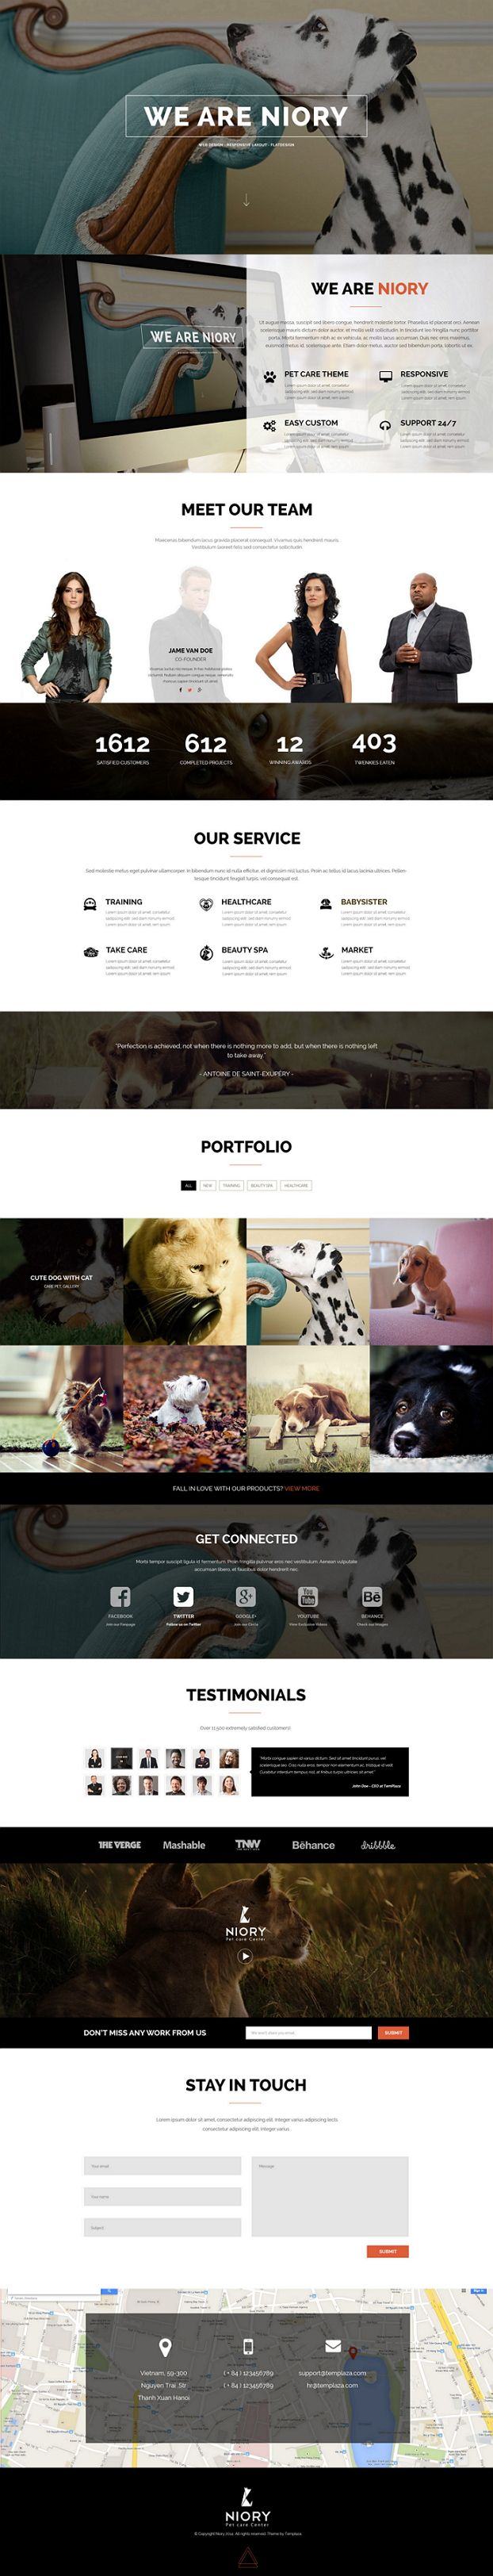 Niory is a Fully responsive Joomla Template and Multipurpose template based on Bootstrap 3.1. framework.This great Joomla template is very suitable for Pet Care or any sites related Corporations, Companies and Enterprises, even Personal site. on